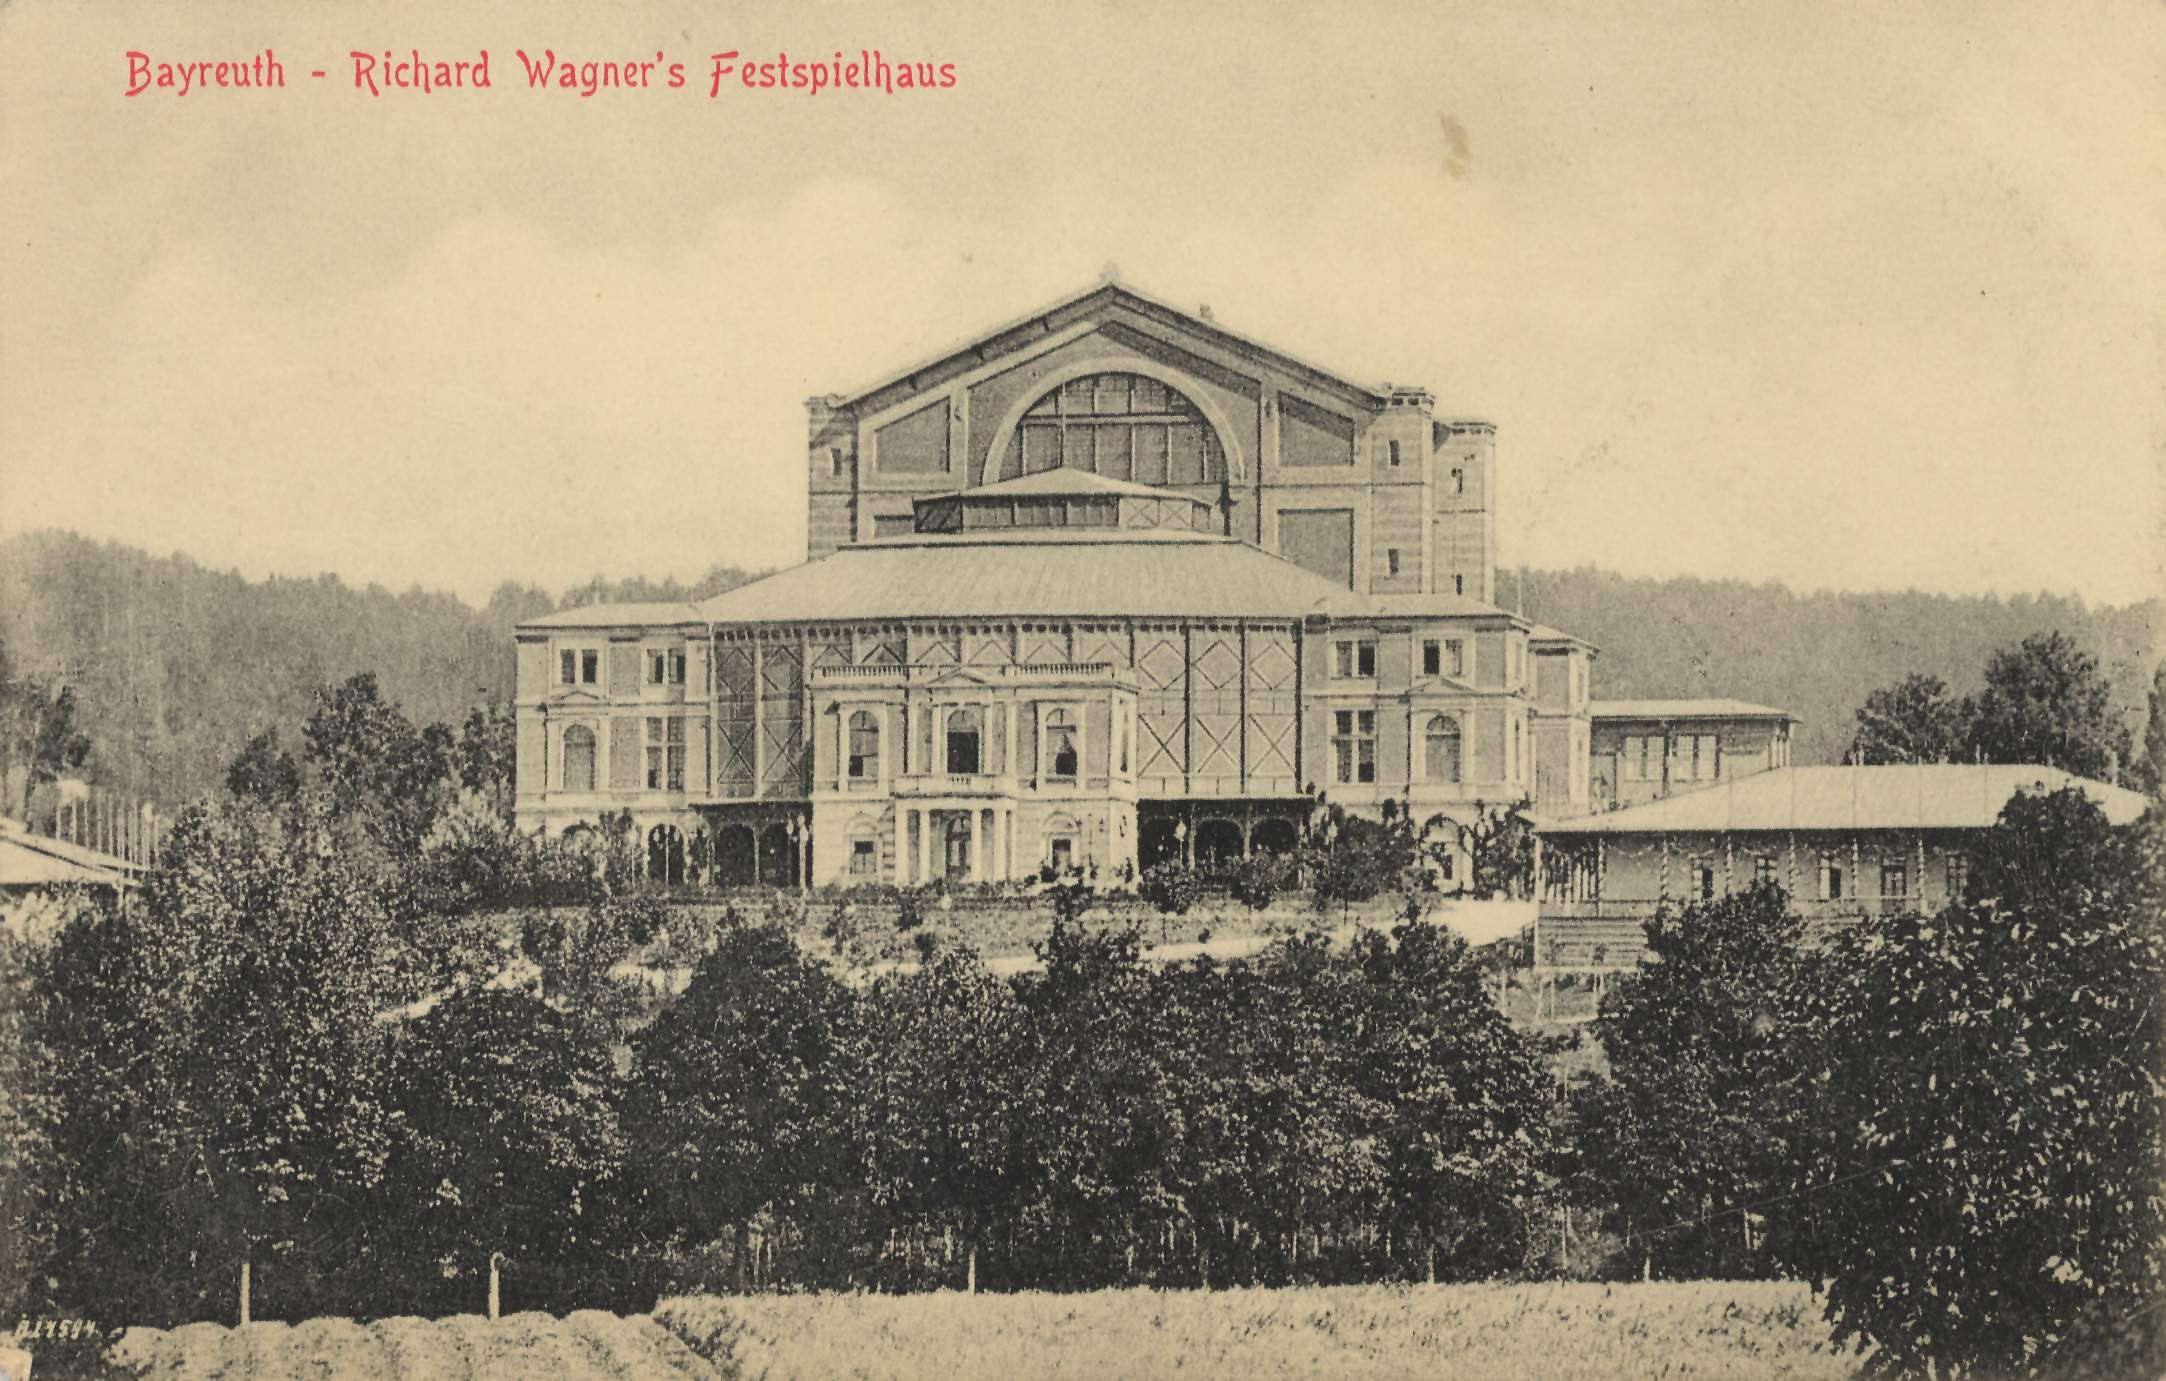 Wagners Festspielhaus Bayreuth.jpg